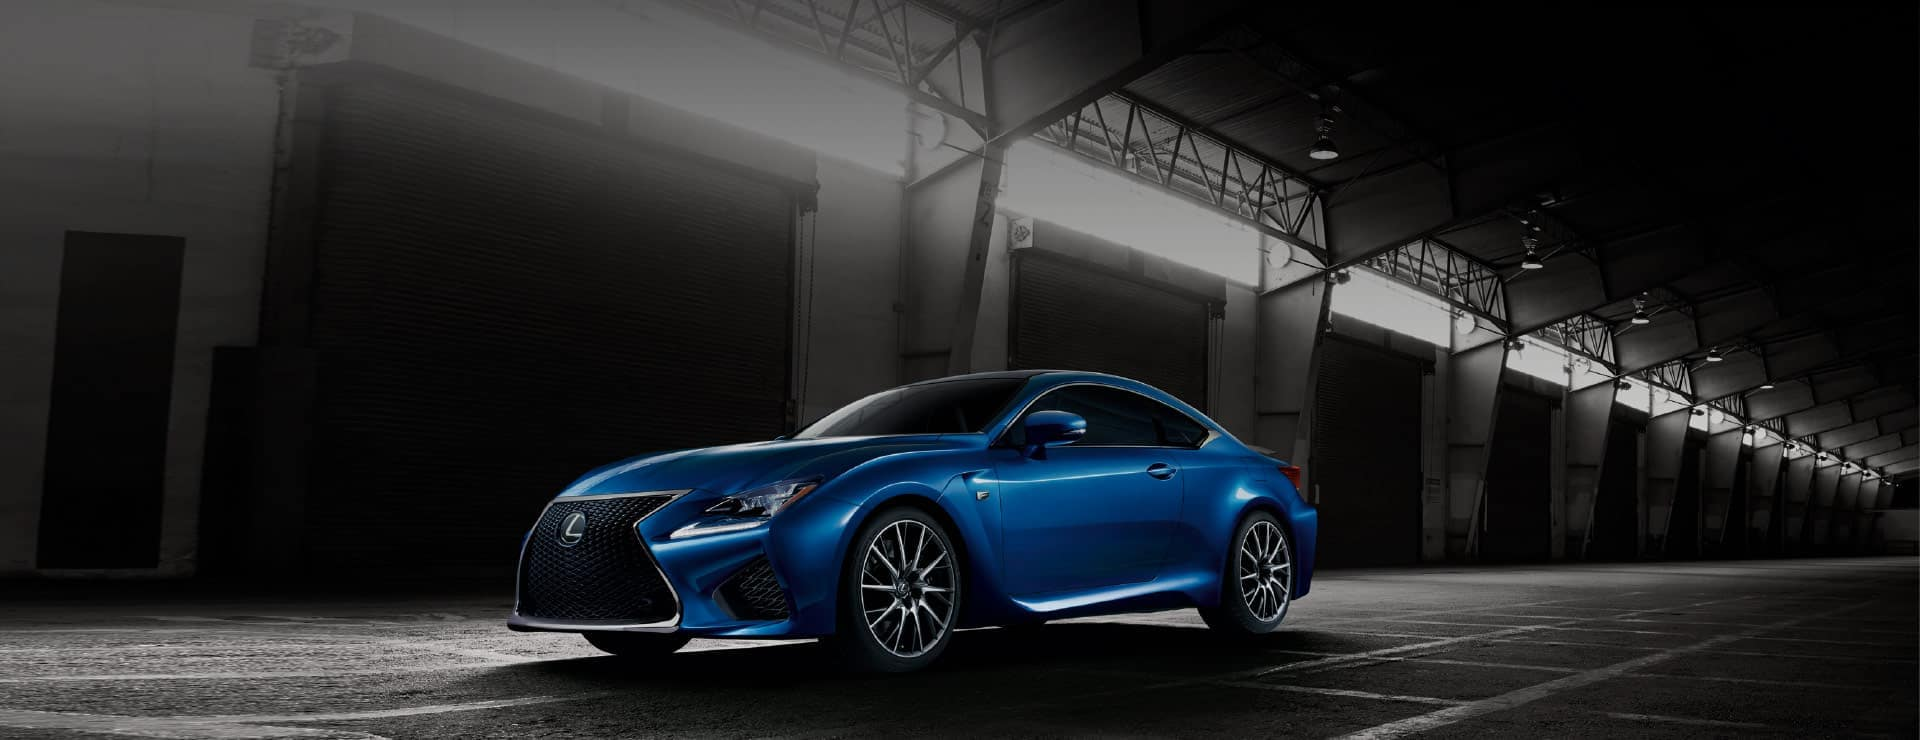 Blue Lexus Coupe in an empty greyscale industrial warehouse